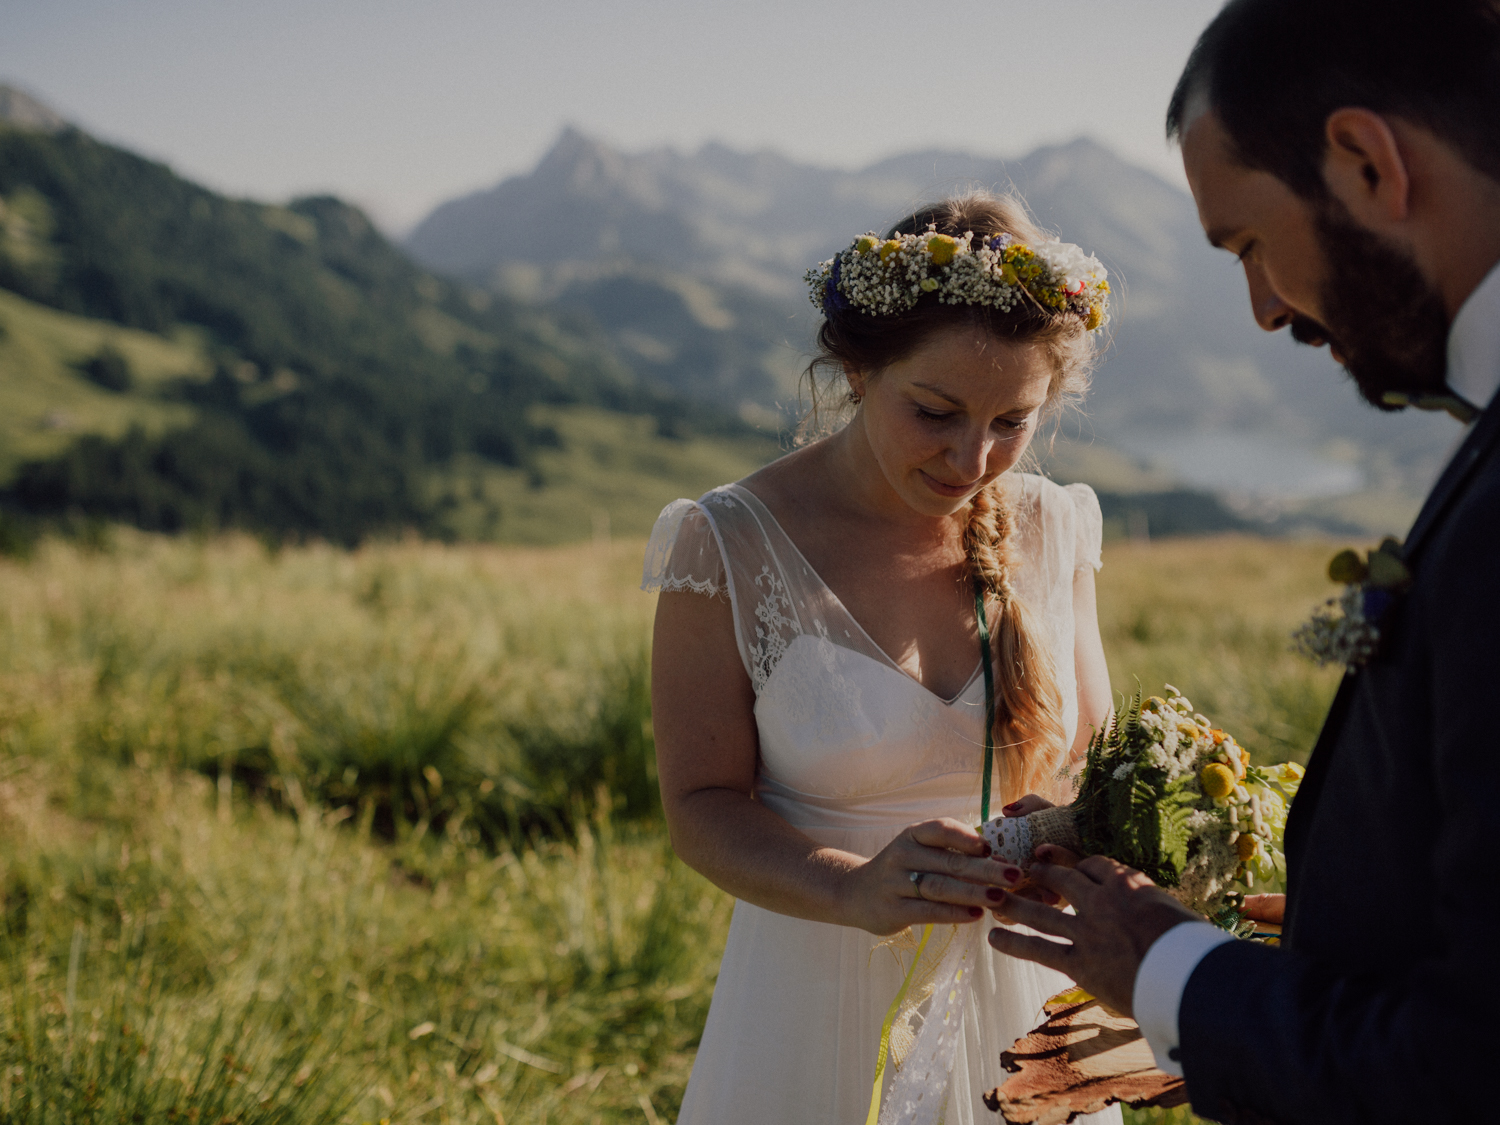 capyture-wedding-photographer-destination-elopement-switzerland-79